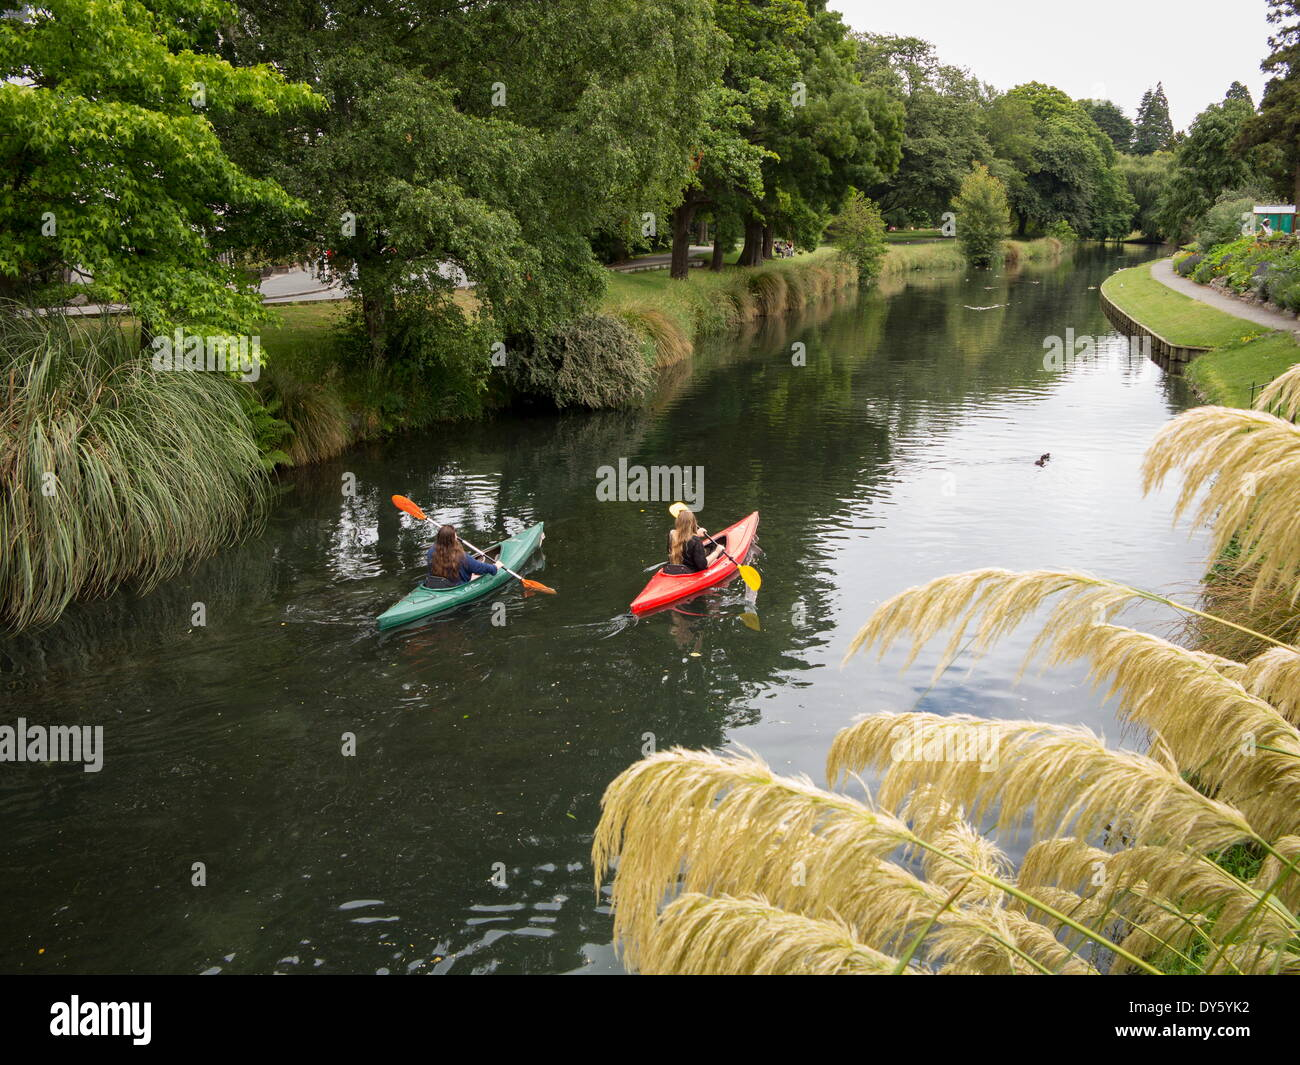 Two girls canoeing on the Avon River, Christchurch, Canterbury, South Island, New Zealand, Pacific - Stock Image